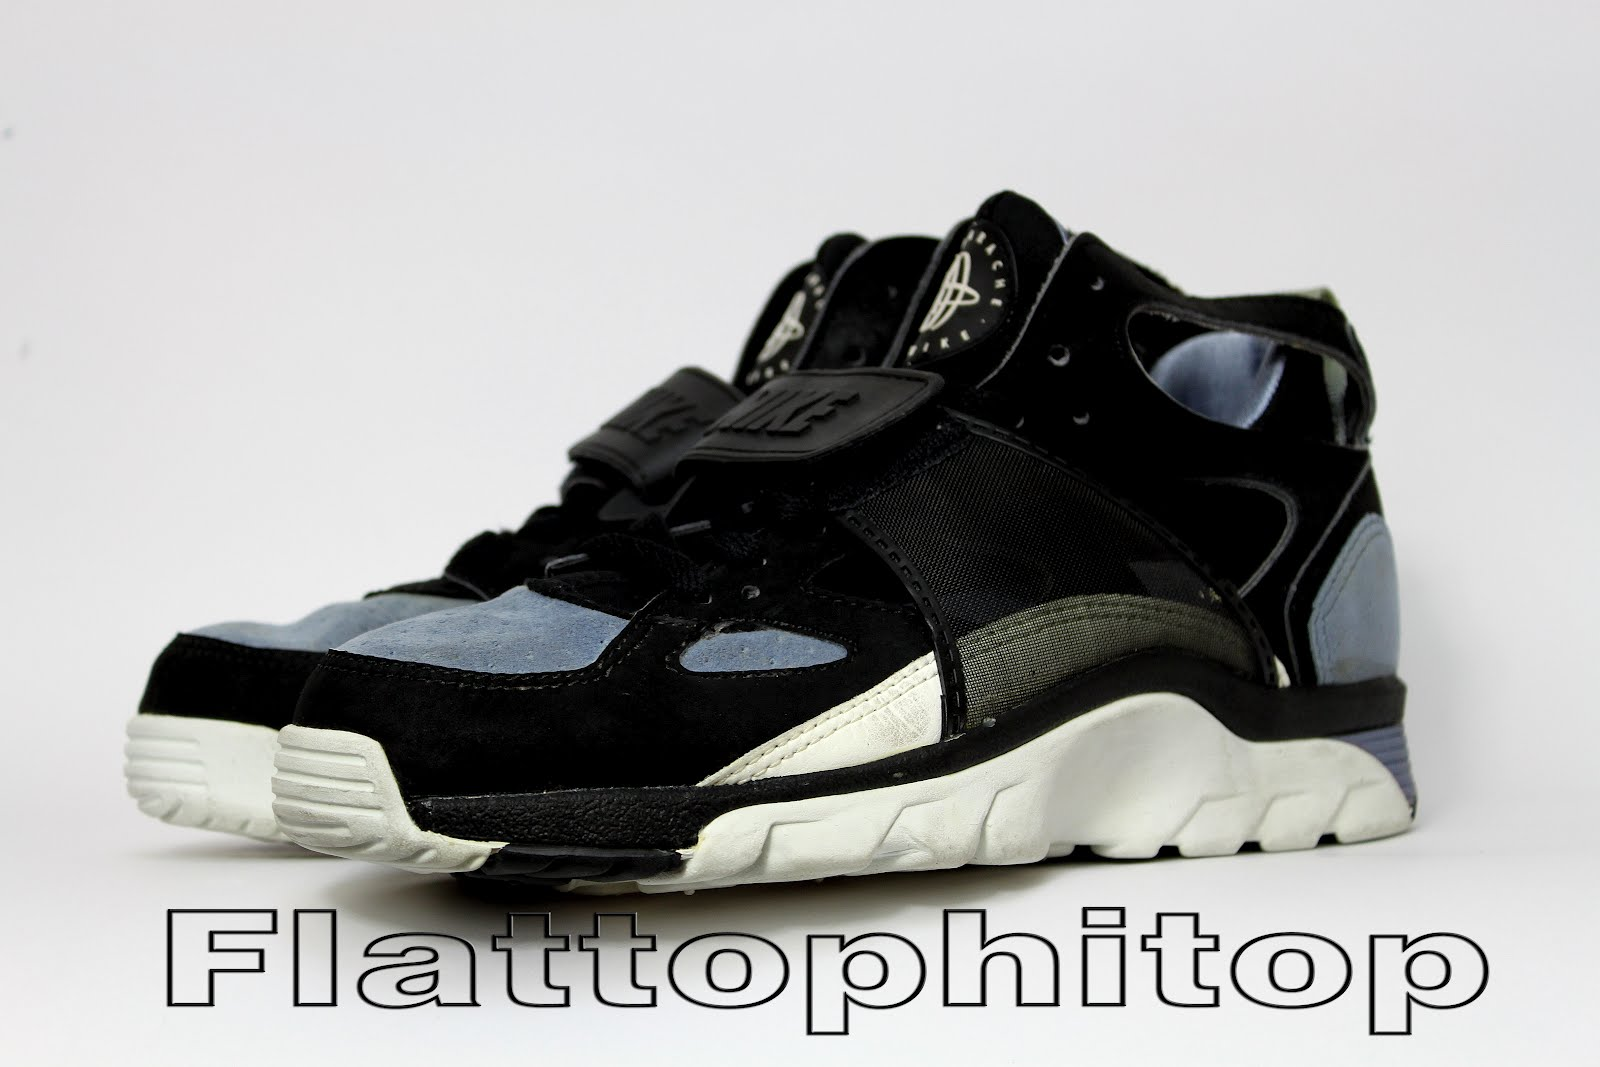 flattophitop nike air trainer huarache 1992. Black Bedroom Furniture Sets. Home Design Ideas